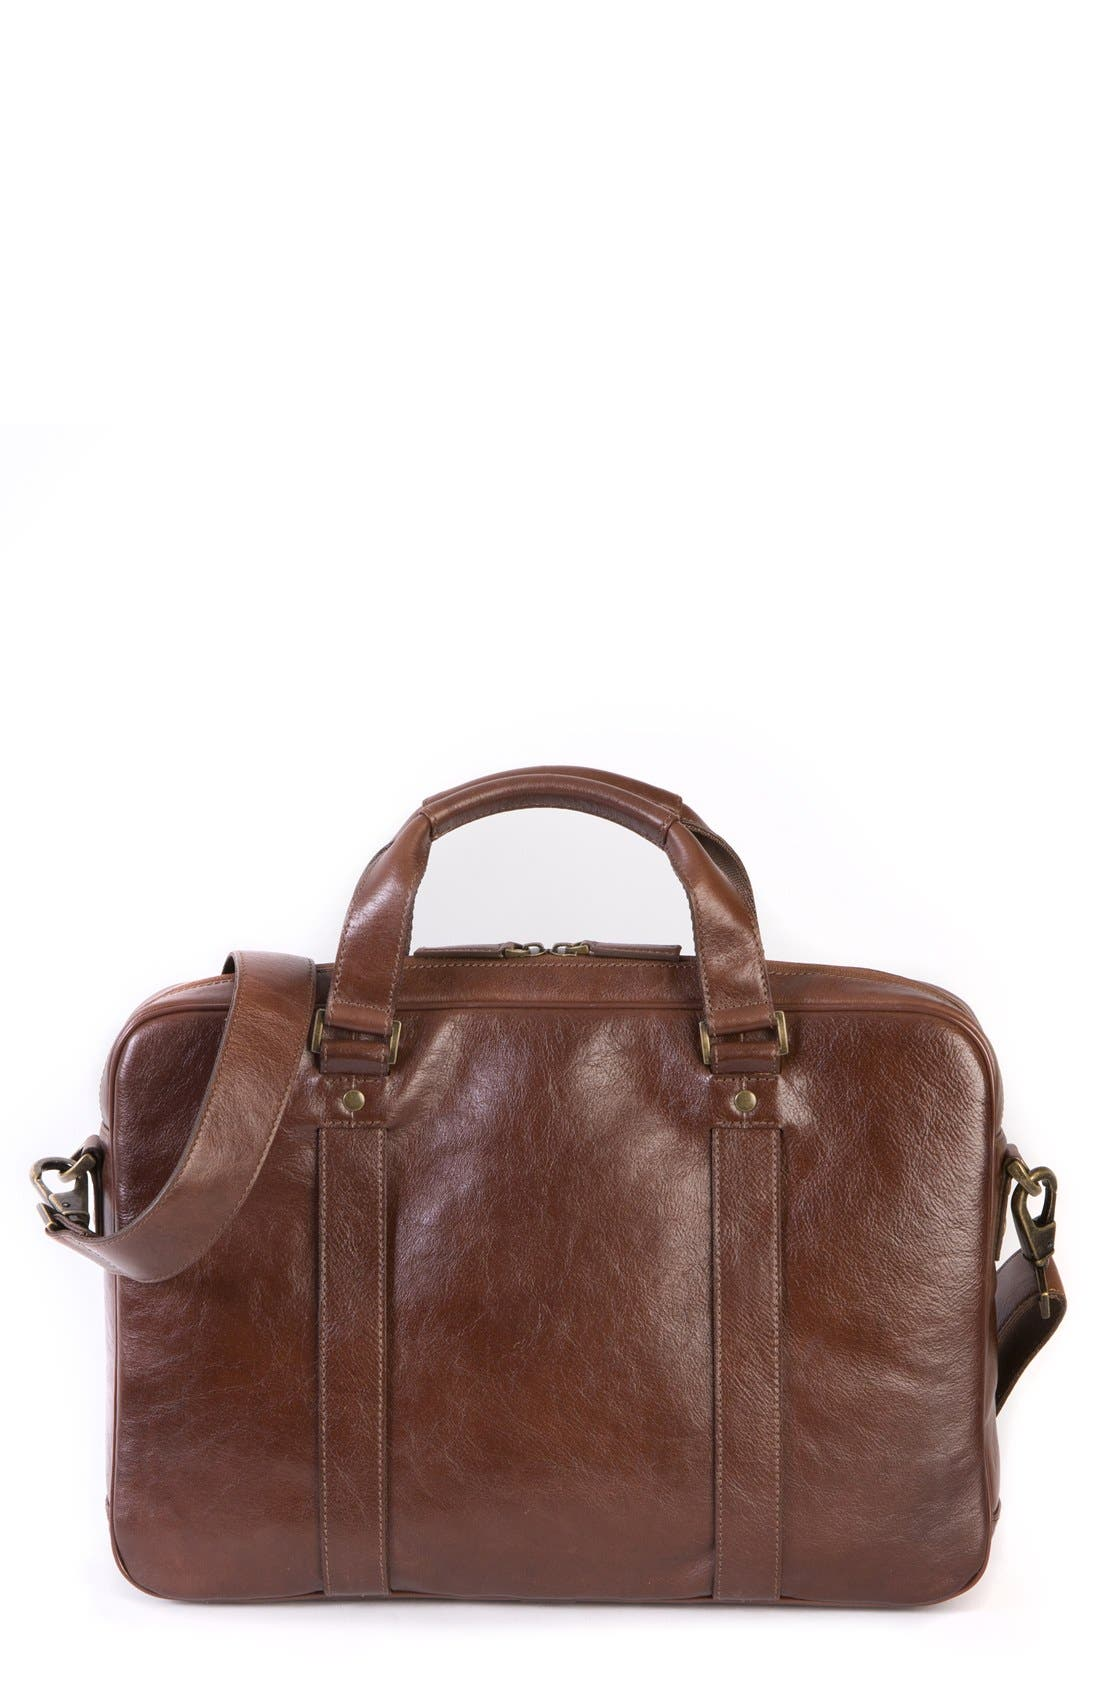 Becker Leather Briefcase,                             Main thumbnail 1, color,                             215